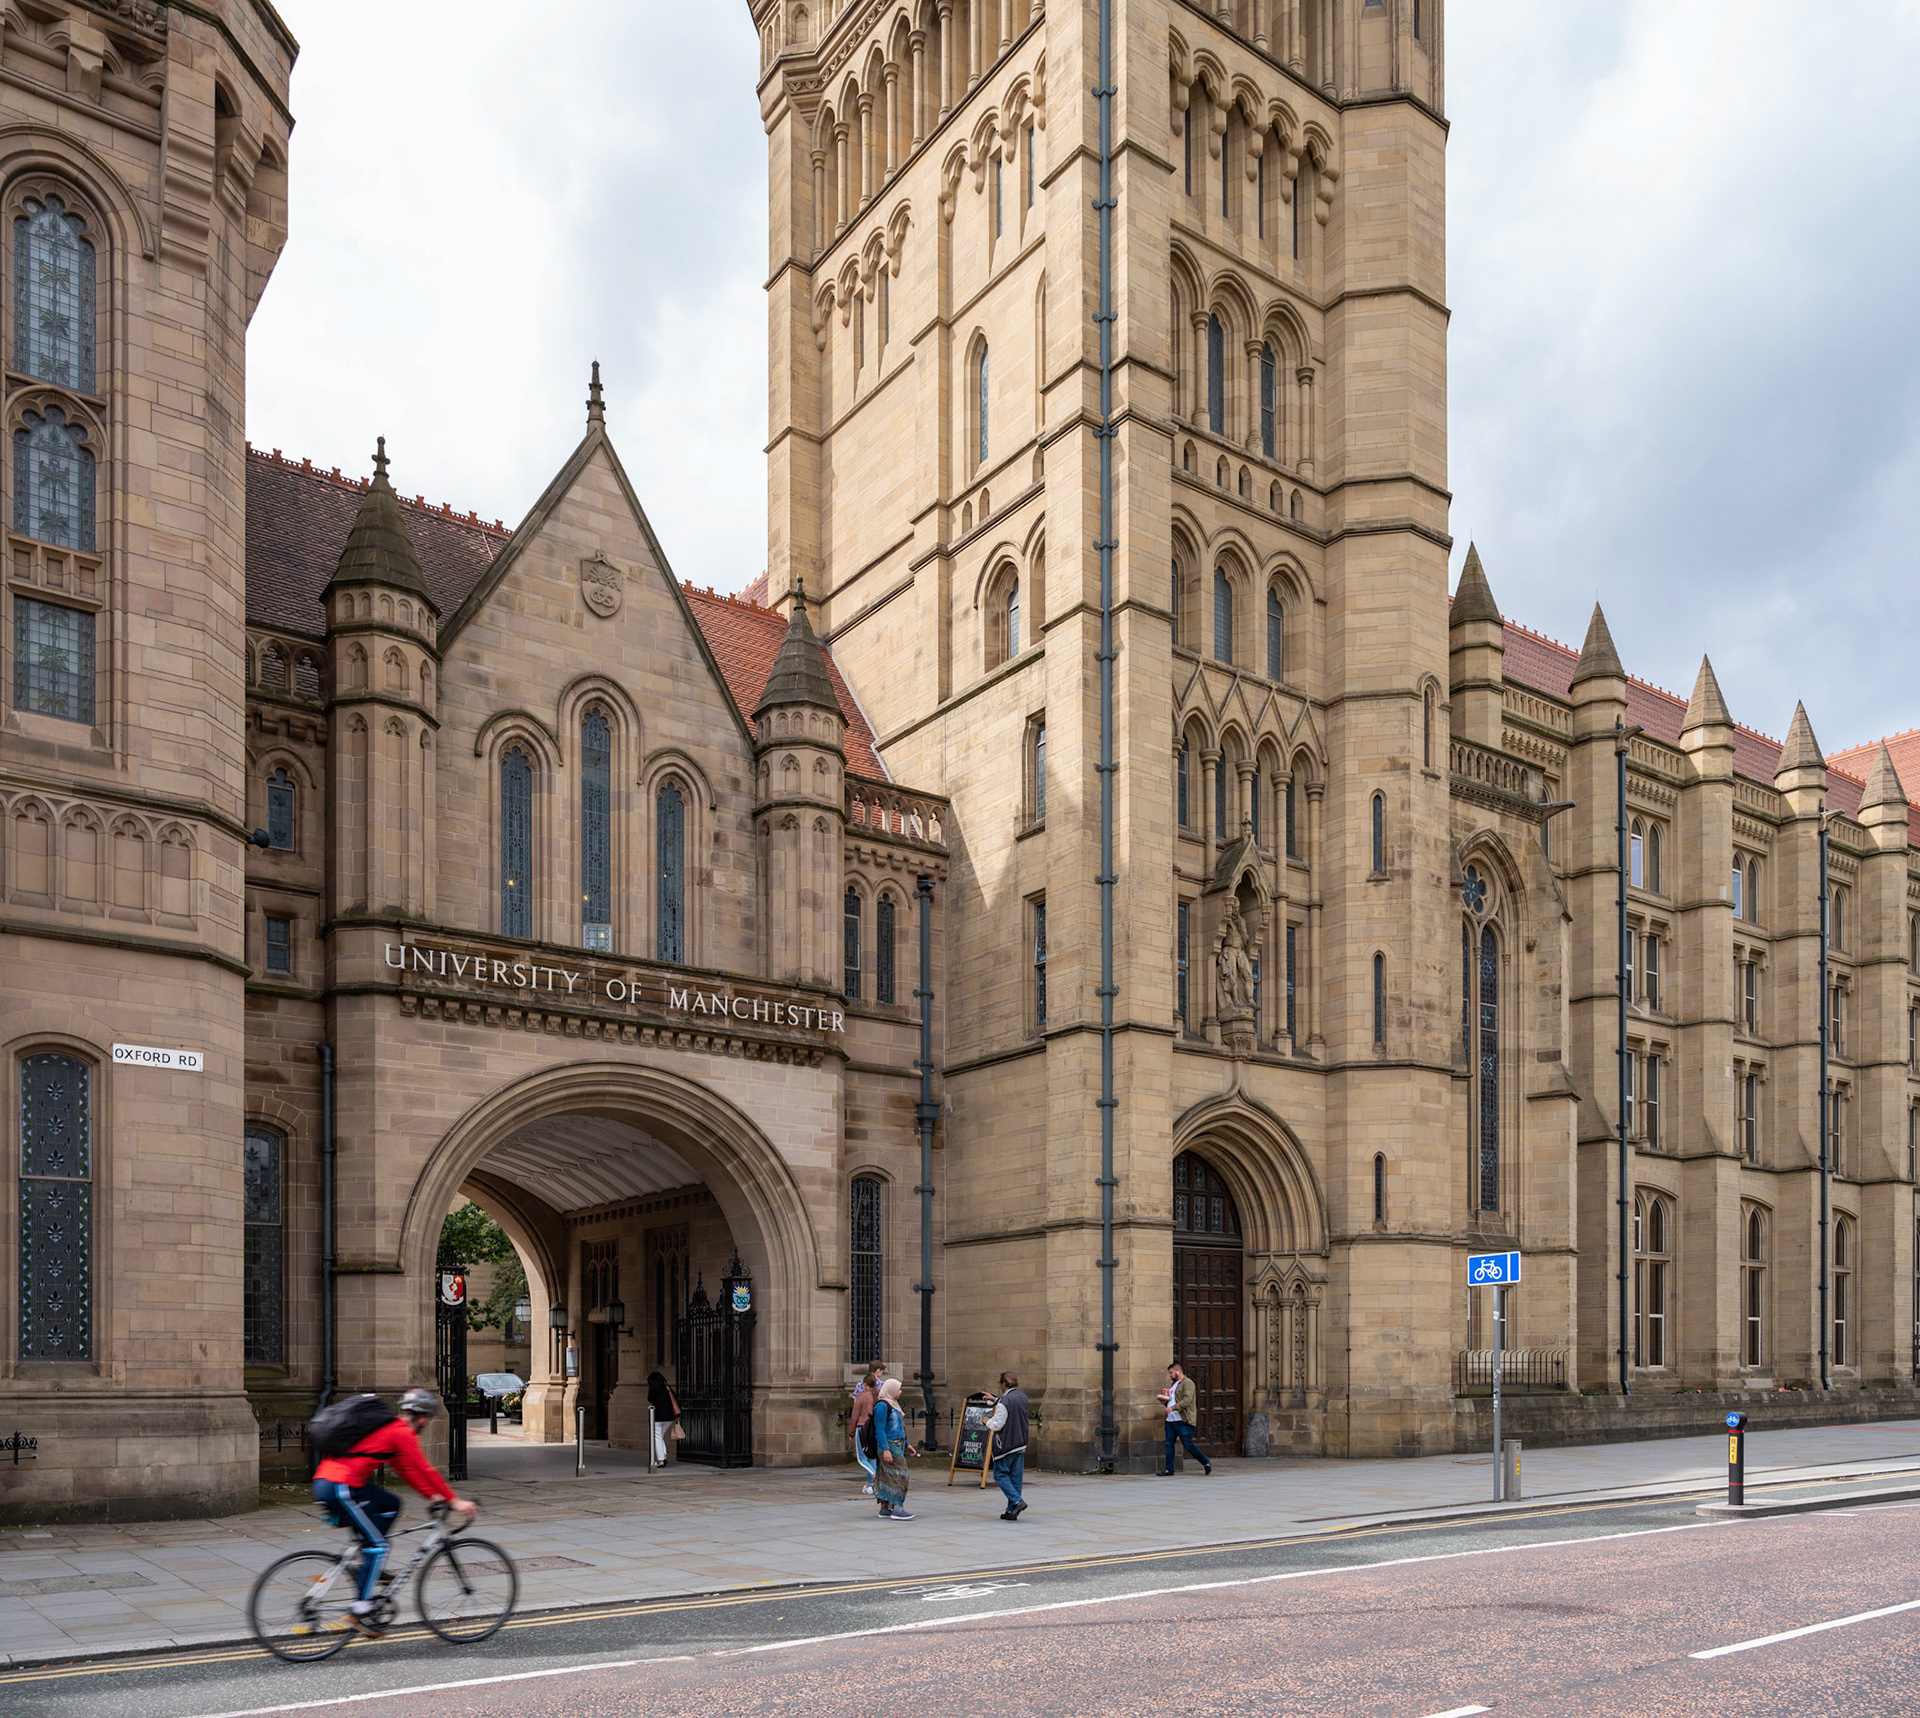 Commercial Photography University of Manchester Campus with students walking through with Brunswick building behind cloudy day